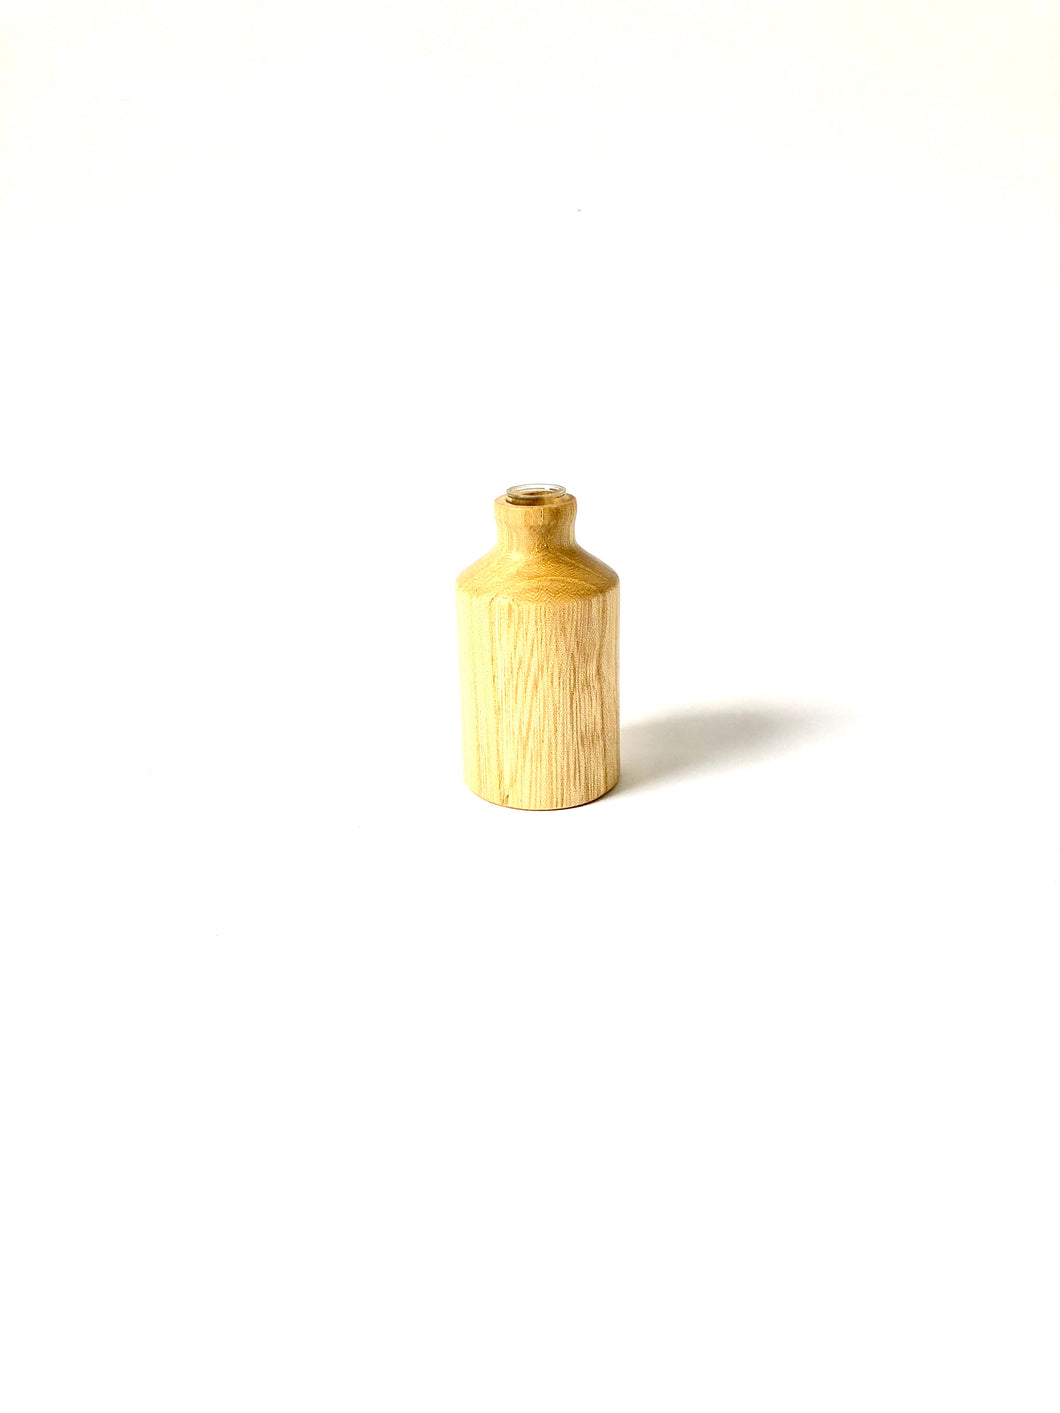 Japanese Handcrafted Wooden Miniature Vase Castor Aralia Tree- 栓のチビ輪挿し